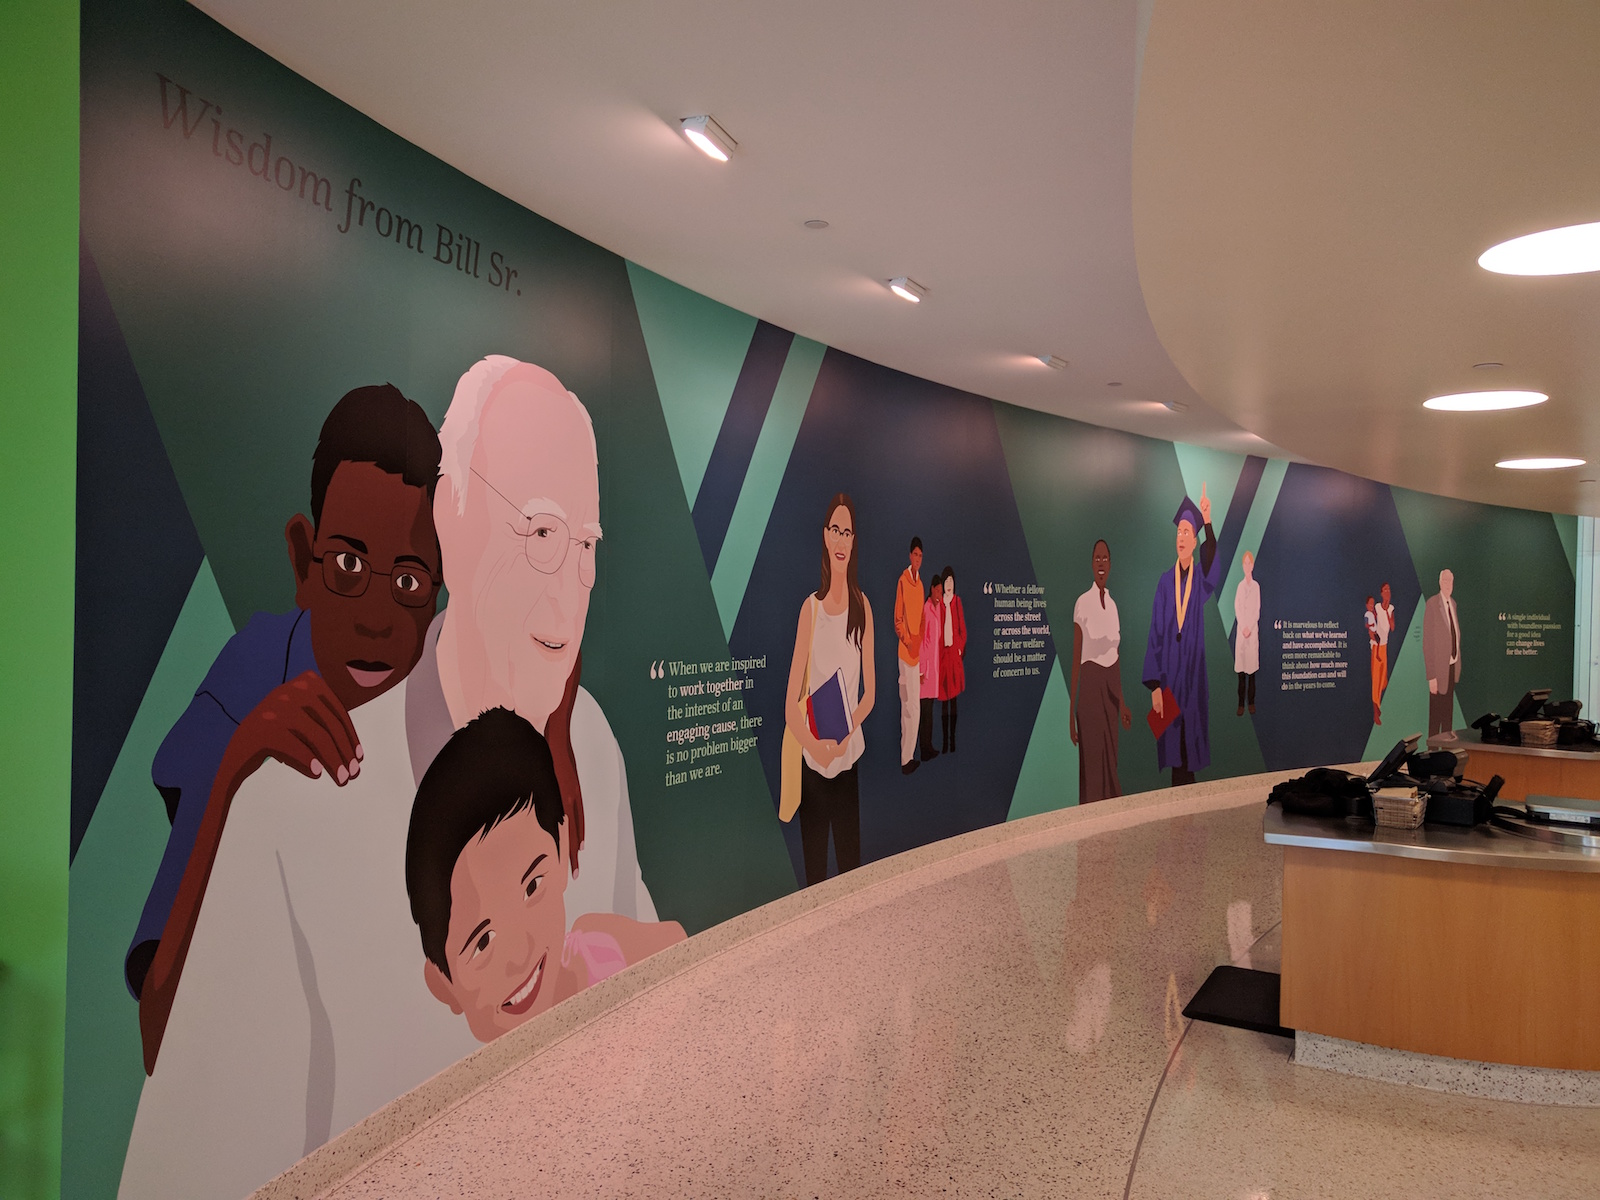 Bill & Melinda Gates Foundation: Large Wall Mural